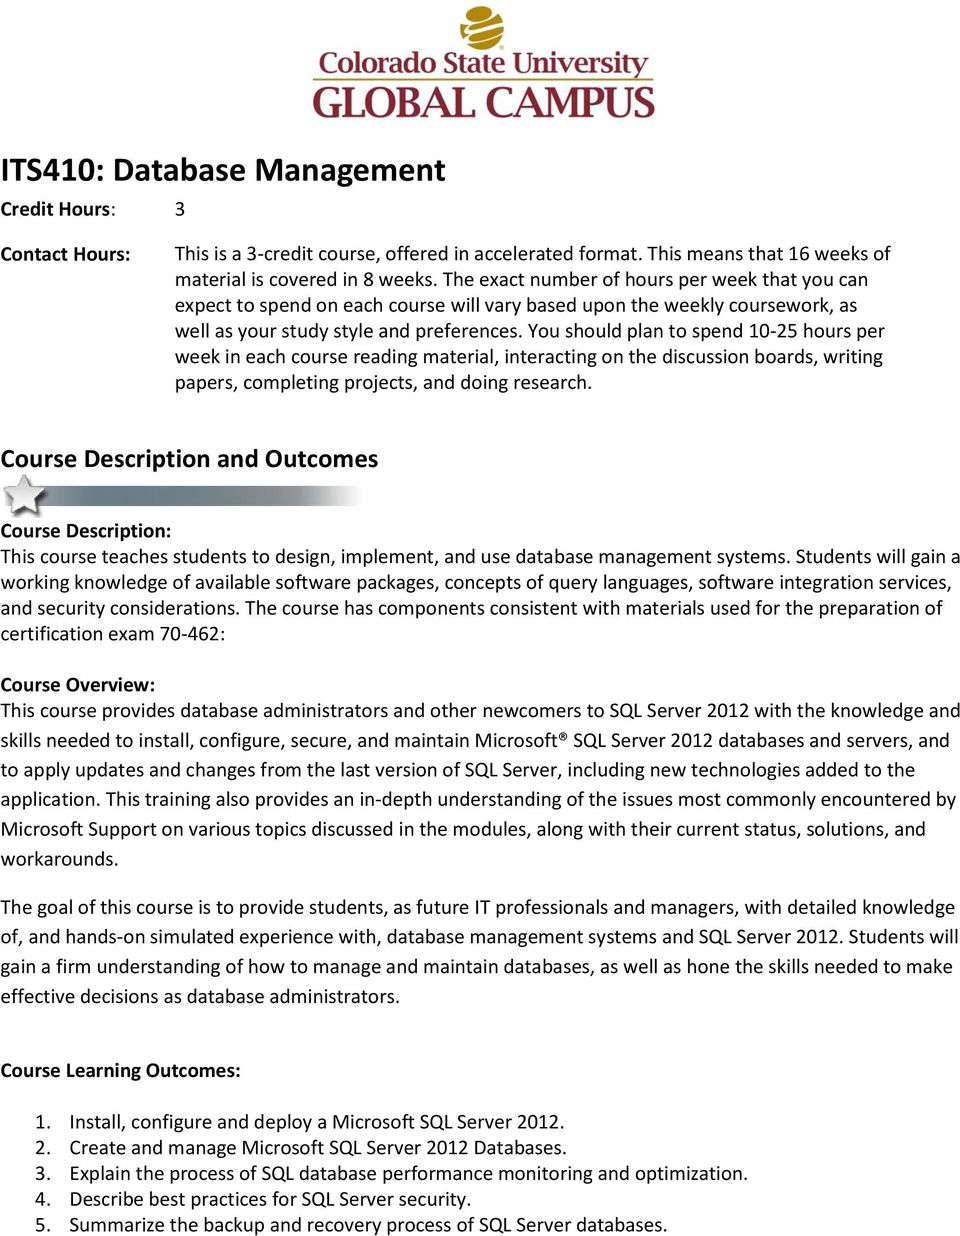 001 Database Research Paper Topics Page 1 Sensational Security Design Full